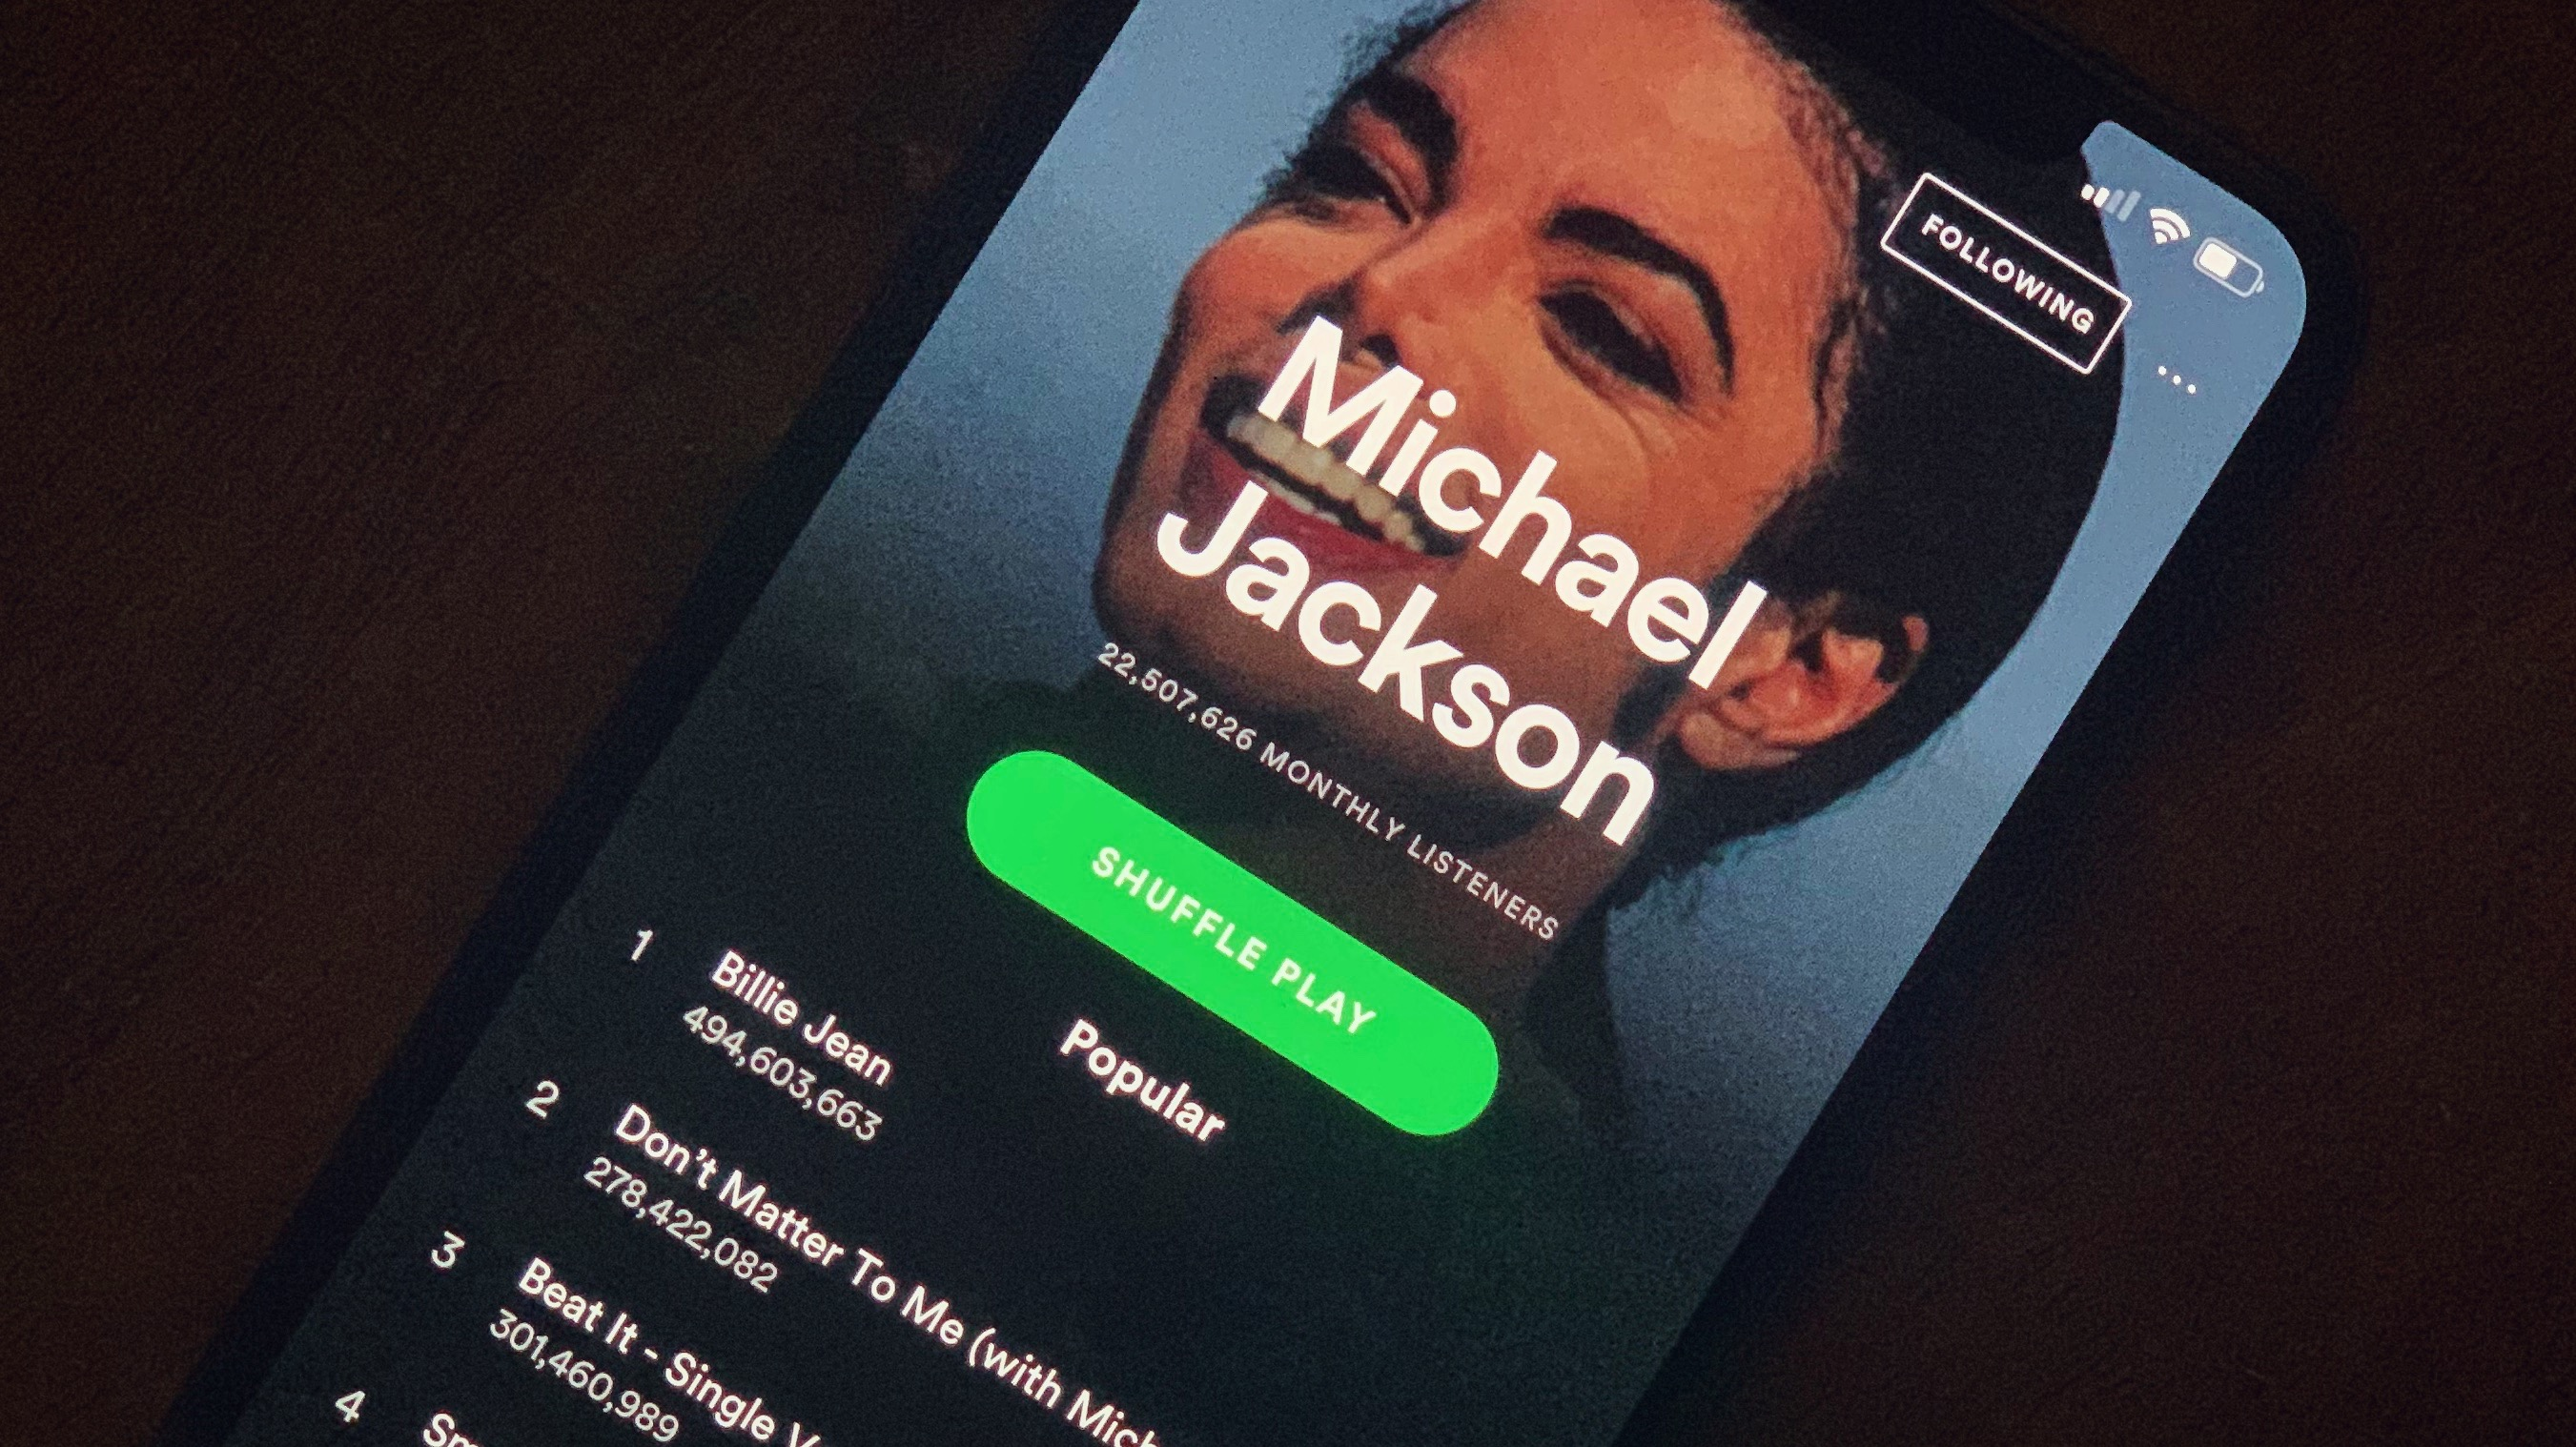 Michael's Streaming Popularity